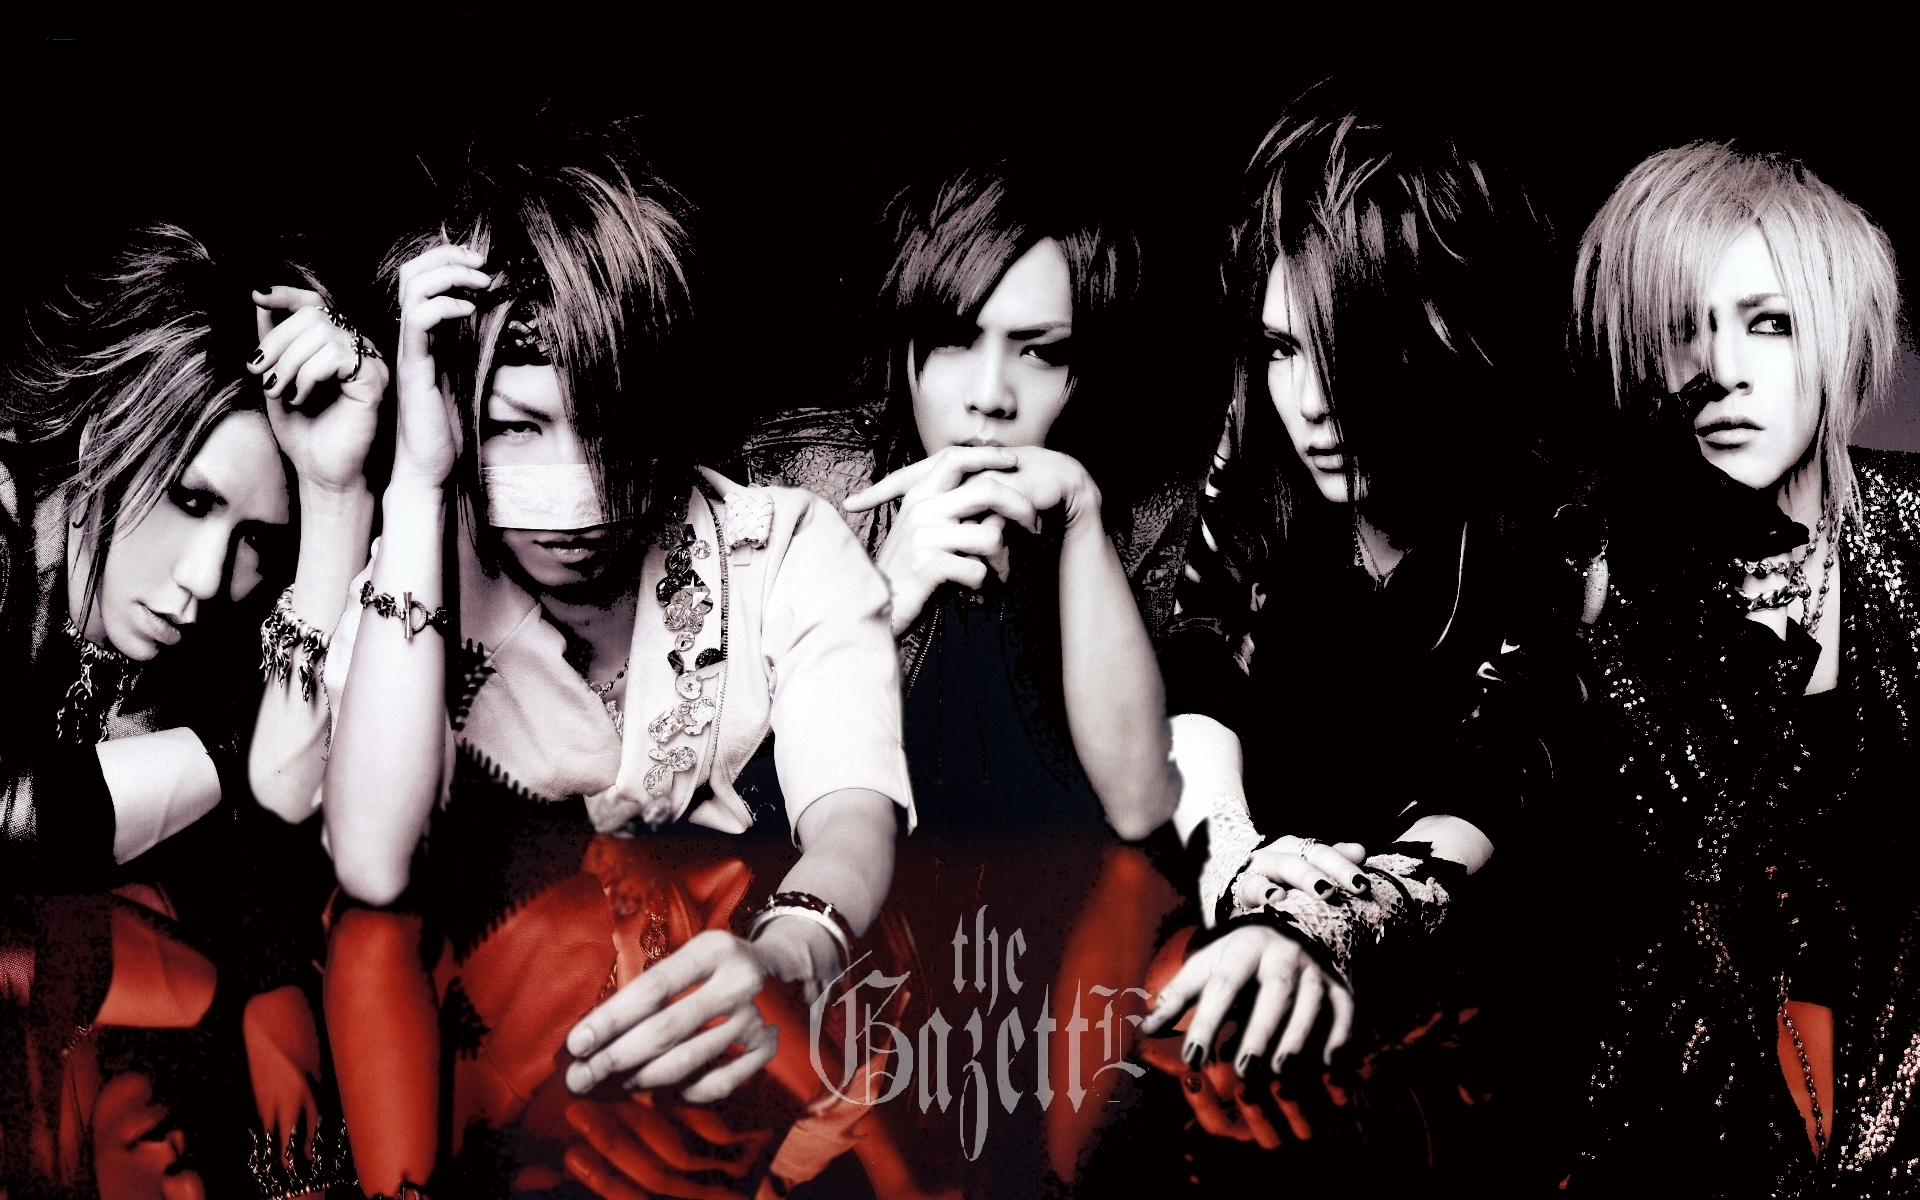 Gif Wallpaper Iphone The Gazette Full Hd 壁纸 And 背景 1920x1200 Id 233147